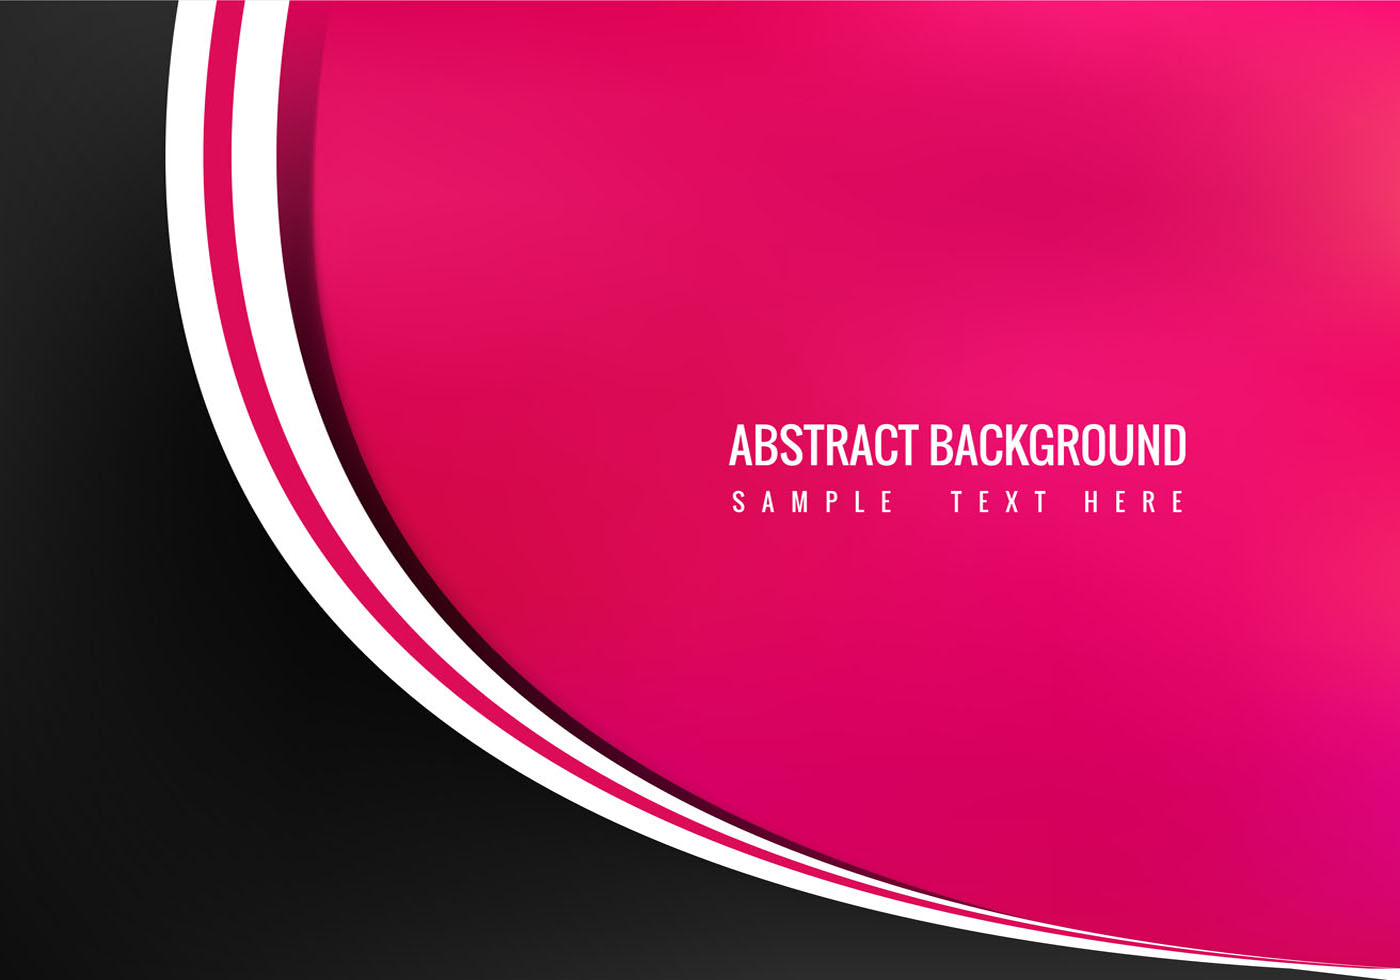 Free Vector Abstract Pink Background - Download Free ...